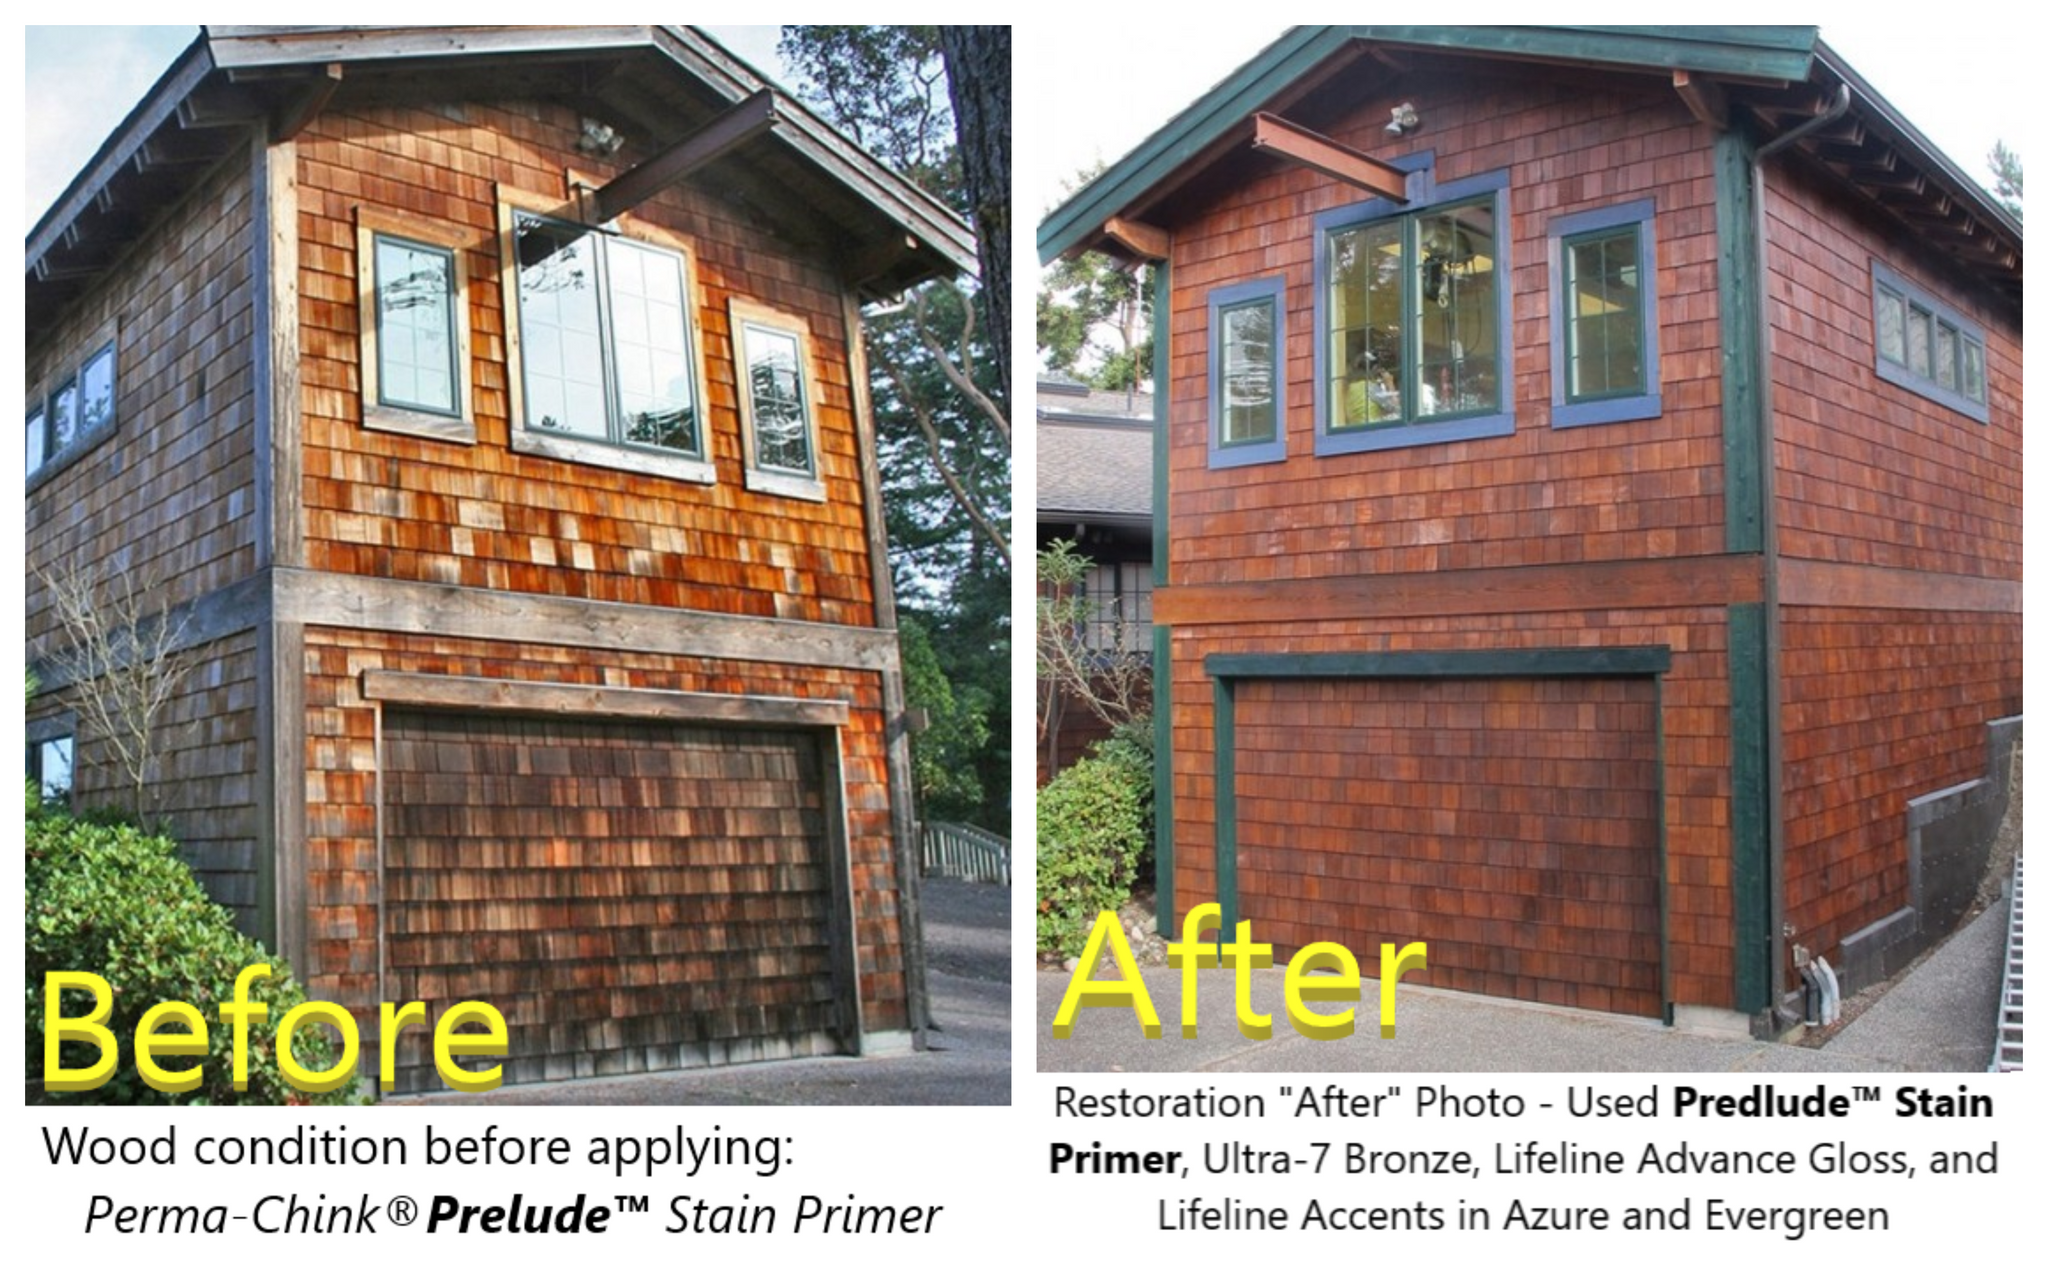 perma-chink permachink perma chink lifeline prelude wood log primer before after